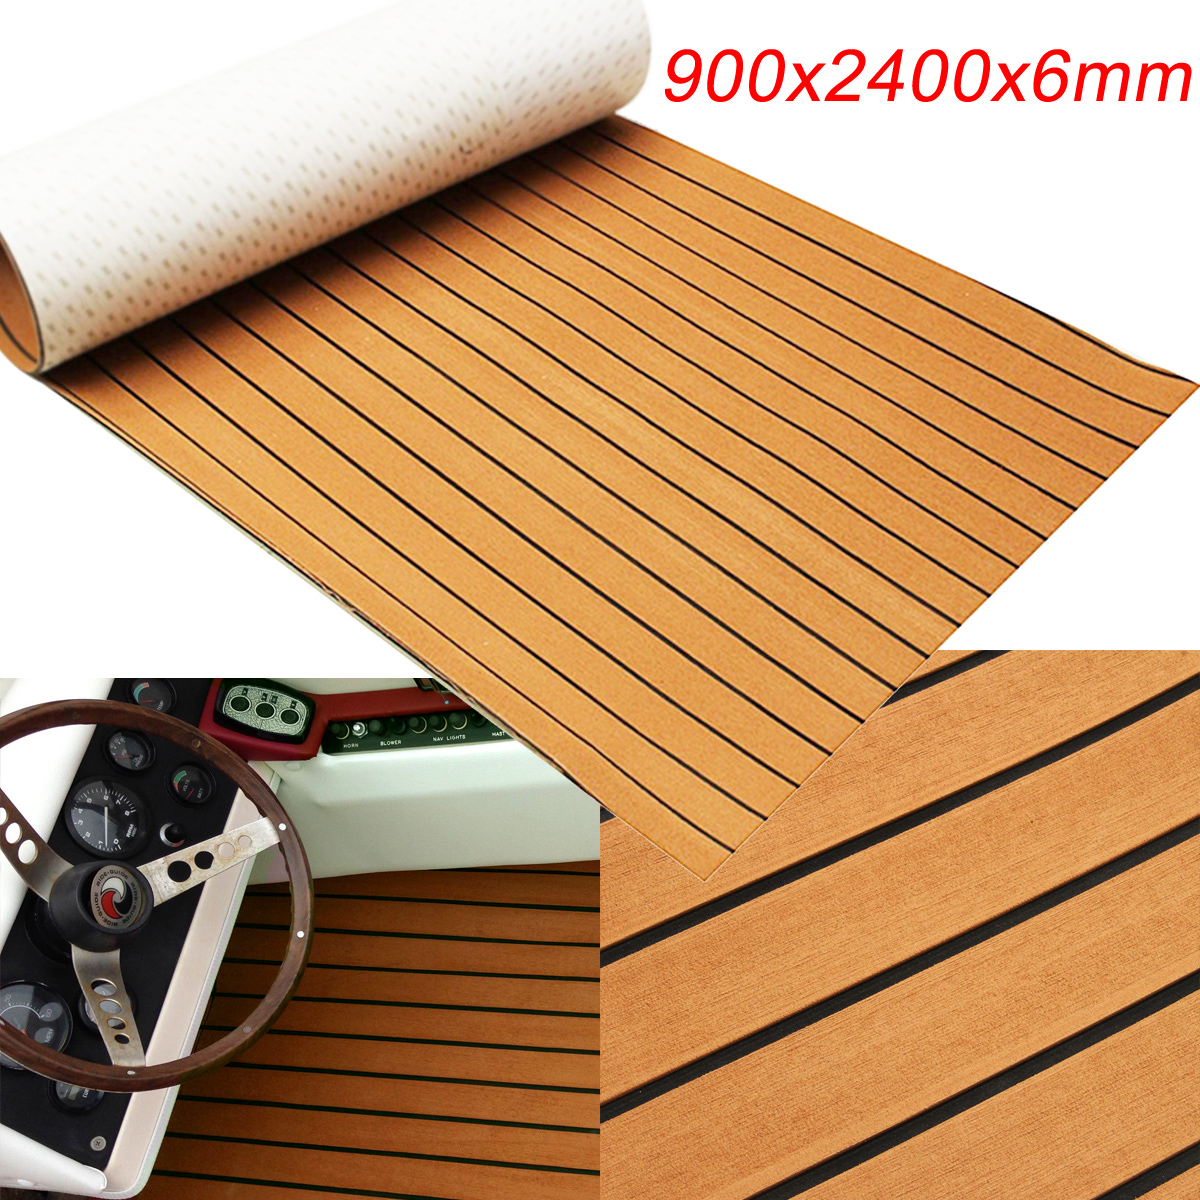 Self-Adhesive 900x2400x6mm Gold With Black Lines Marine Flooring Faux Teak EVA Foam Boat Decking Sheet